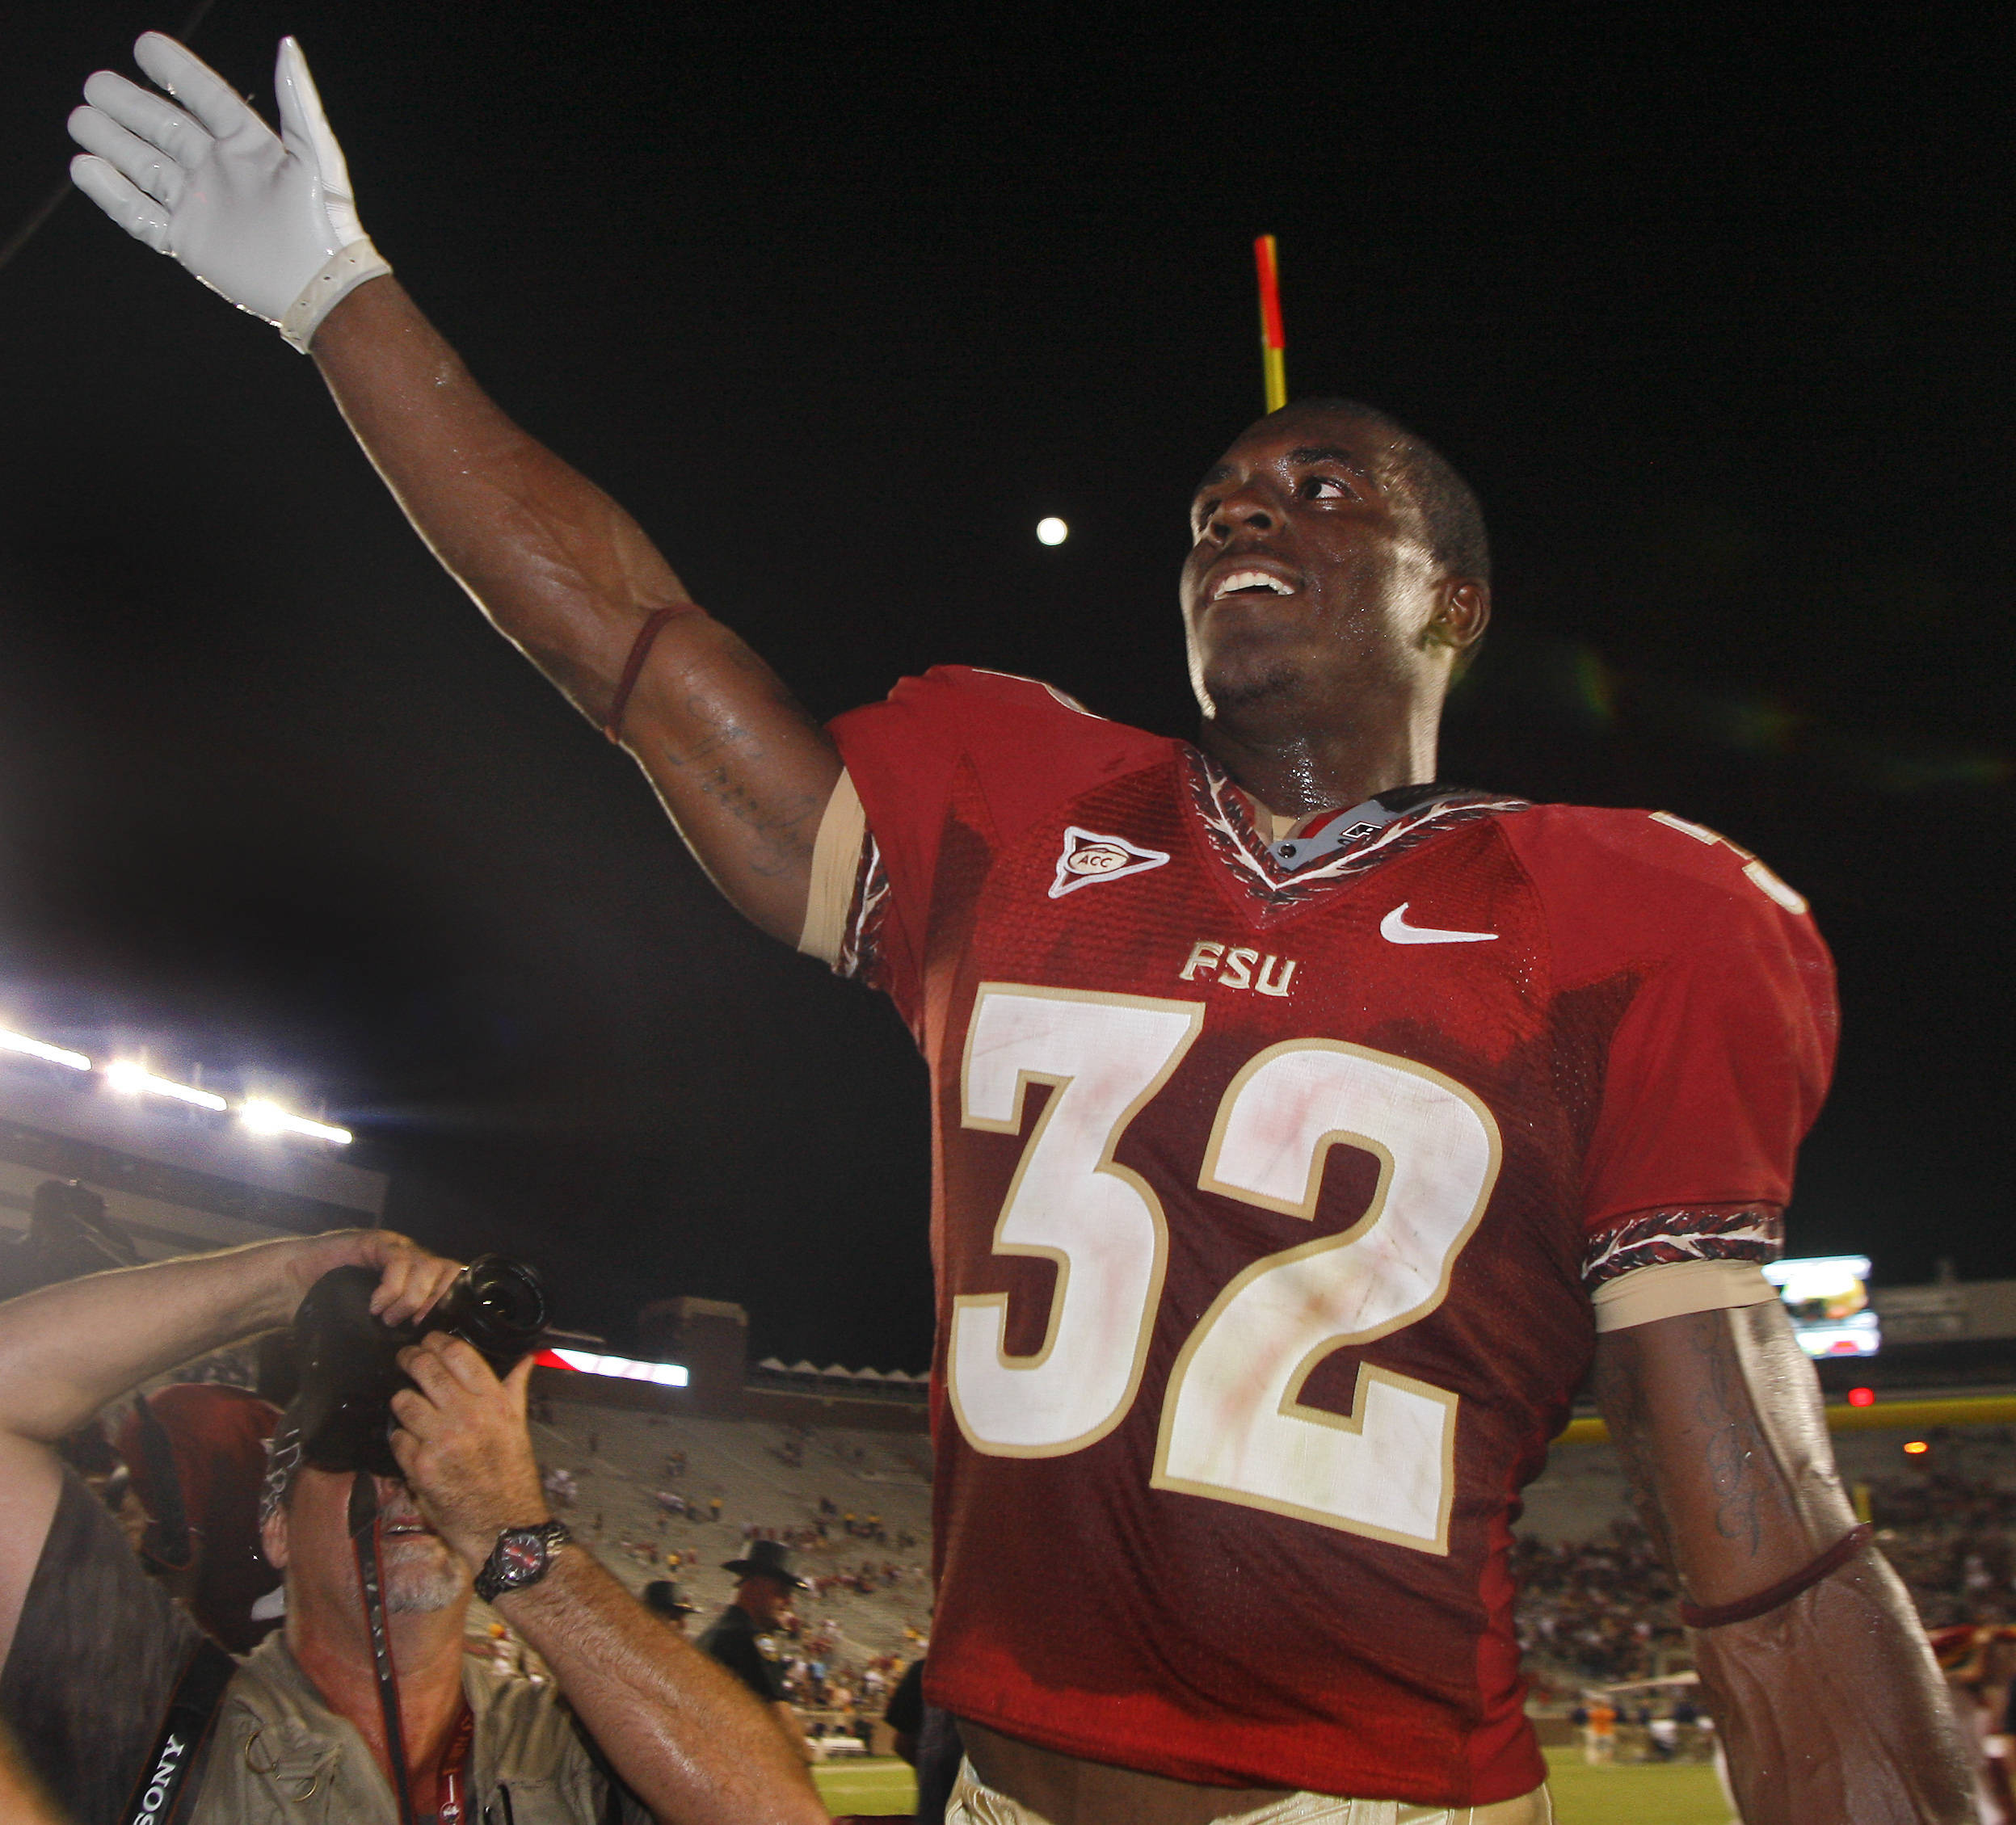 Florida State running back James Wilder Jr. (32) celebrates after an NCAA college football game against Charleston Southern on Saturday, Sept. 10, 2011, in Tallahassee, Fla. FSU won 62-10. (AP Photo/Phil Sears)